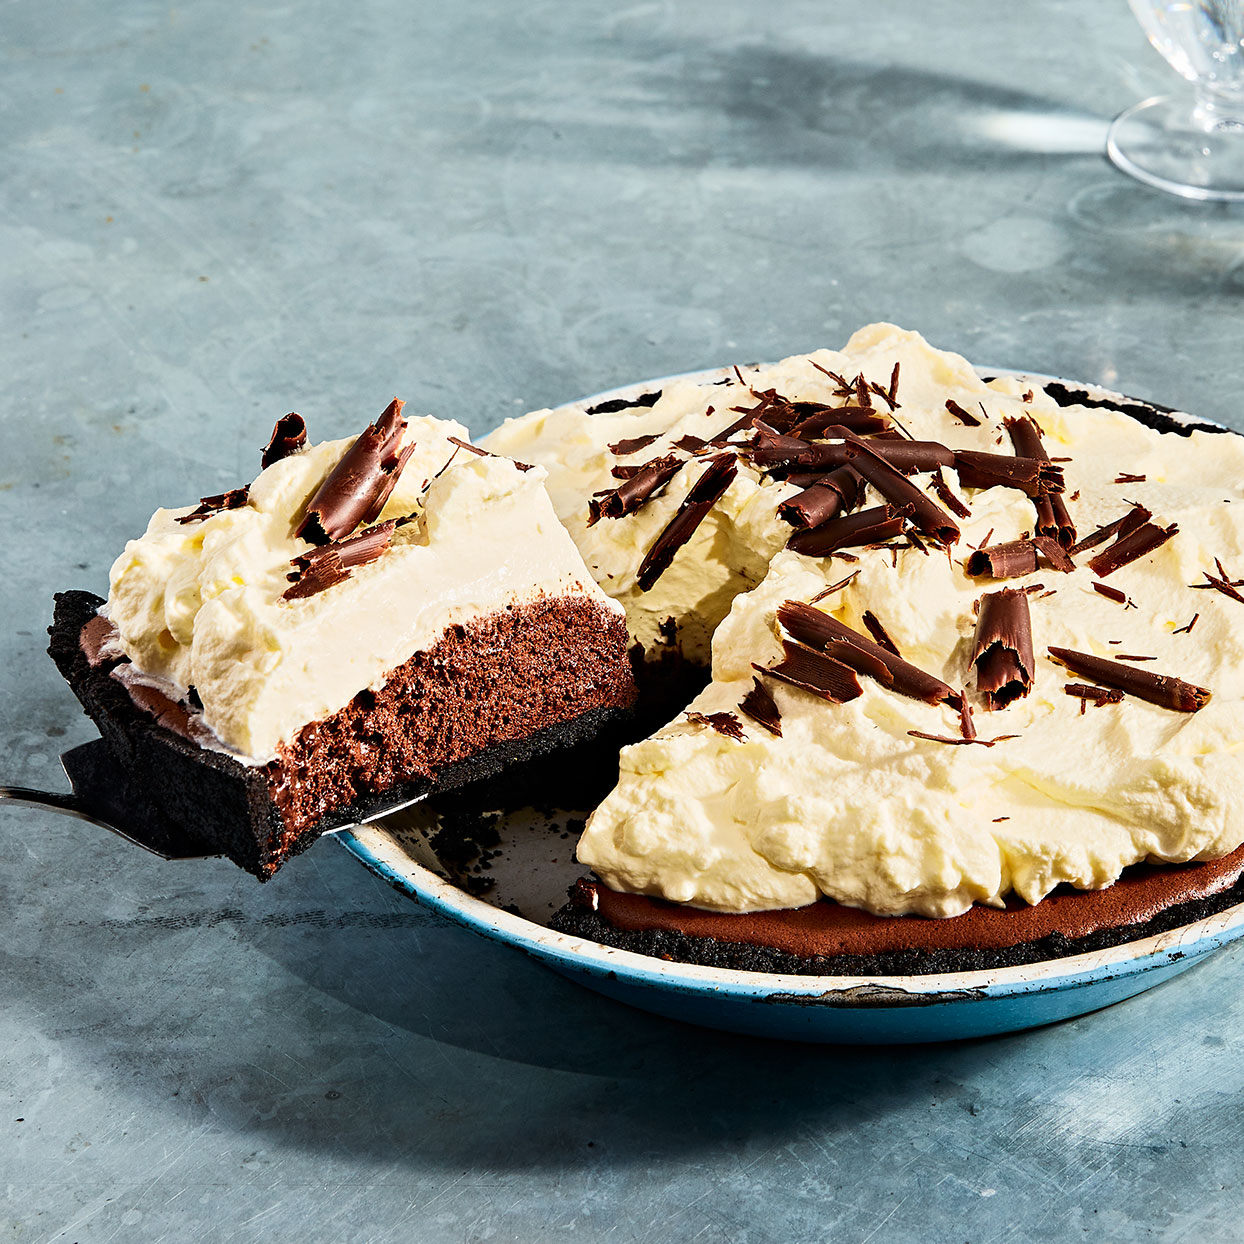 French Silk Pie Trusted Brands